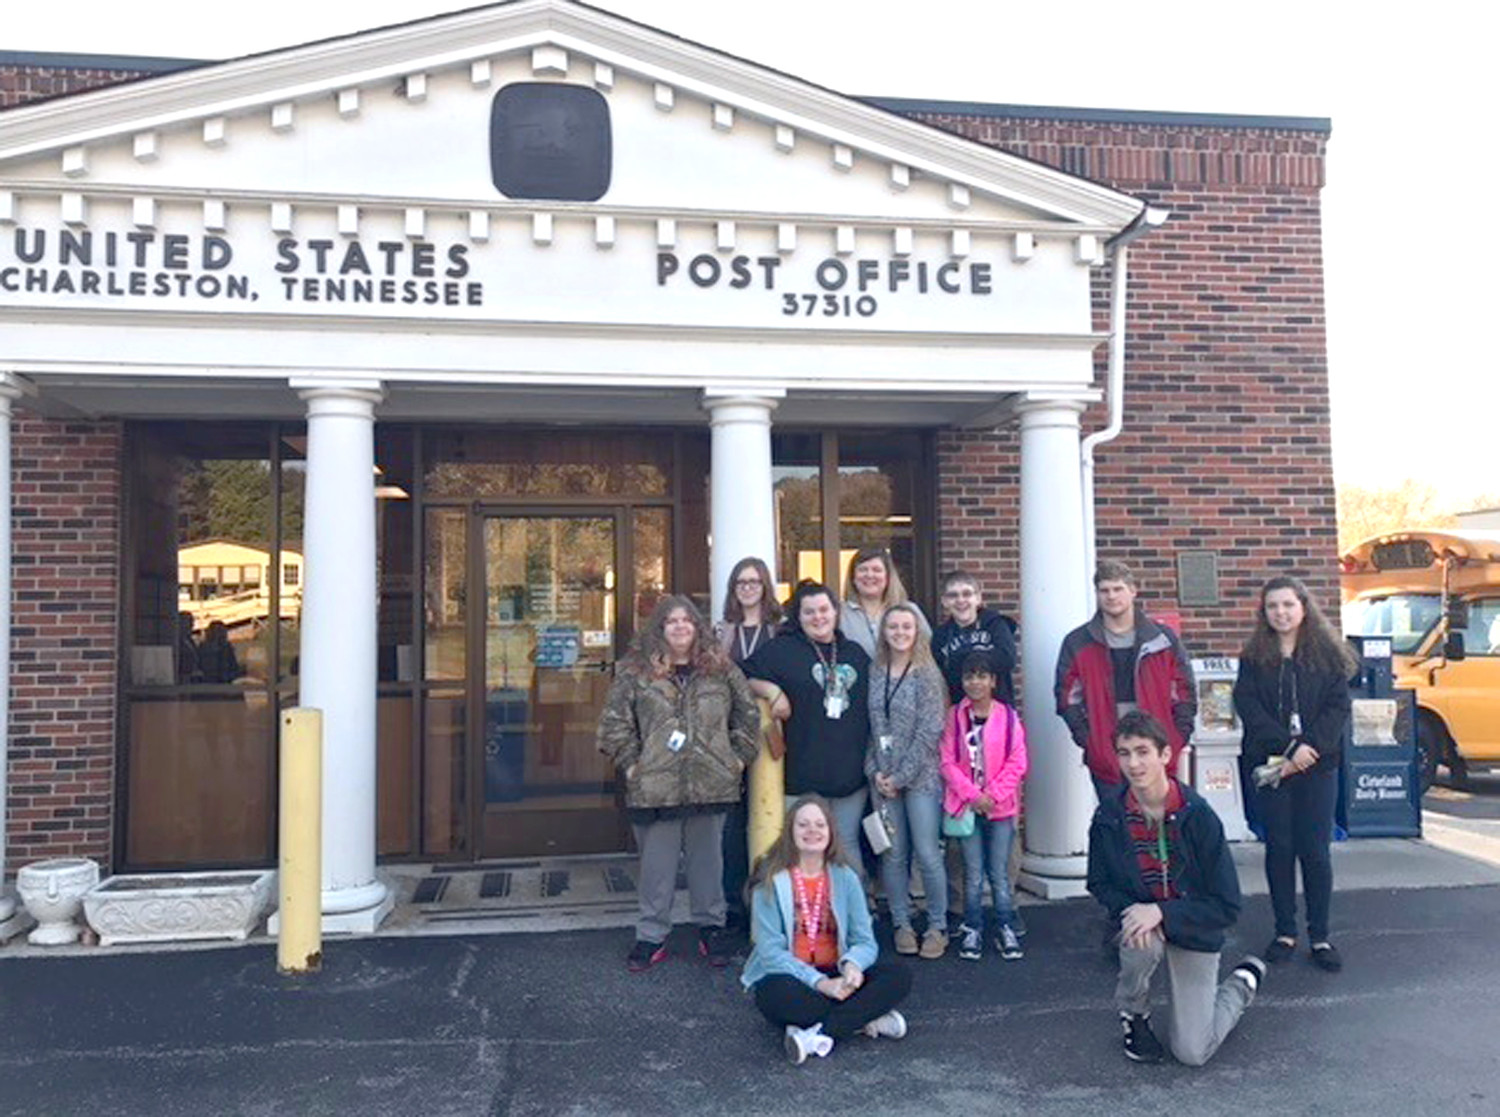 THE U.S. POST OFFICE in Charleston was one of the locations a group of Walker Valley High School students visited on their field trip.